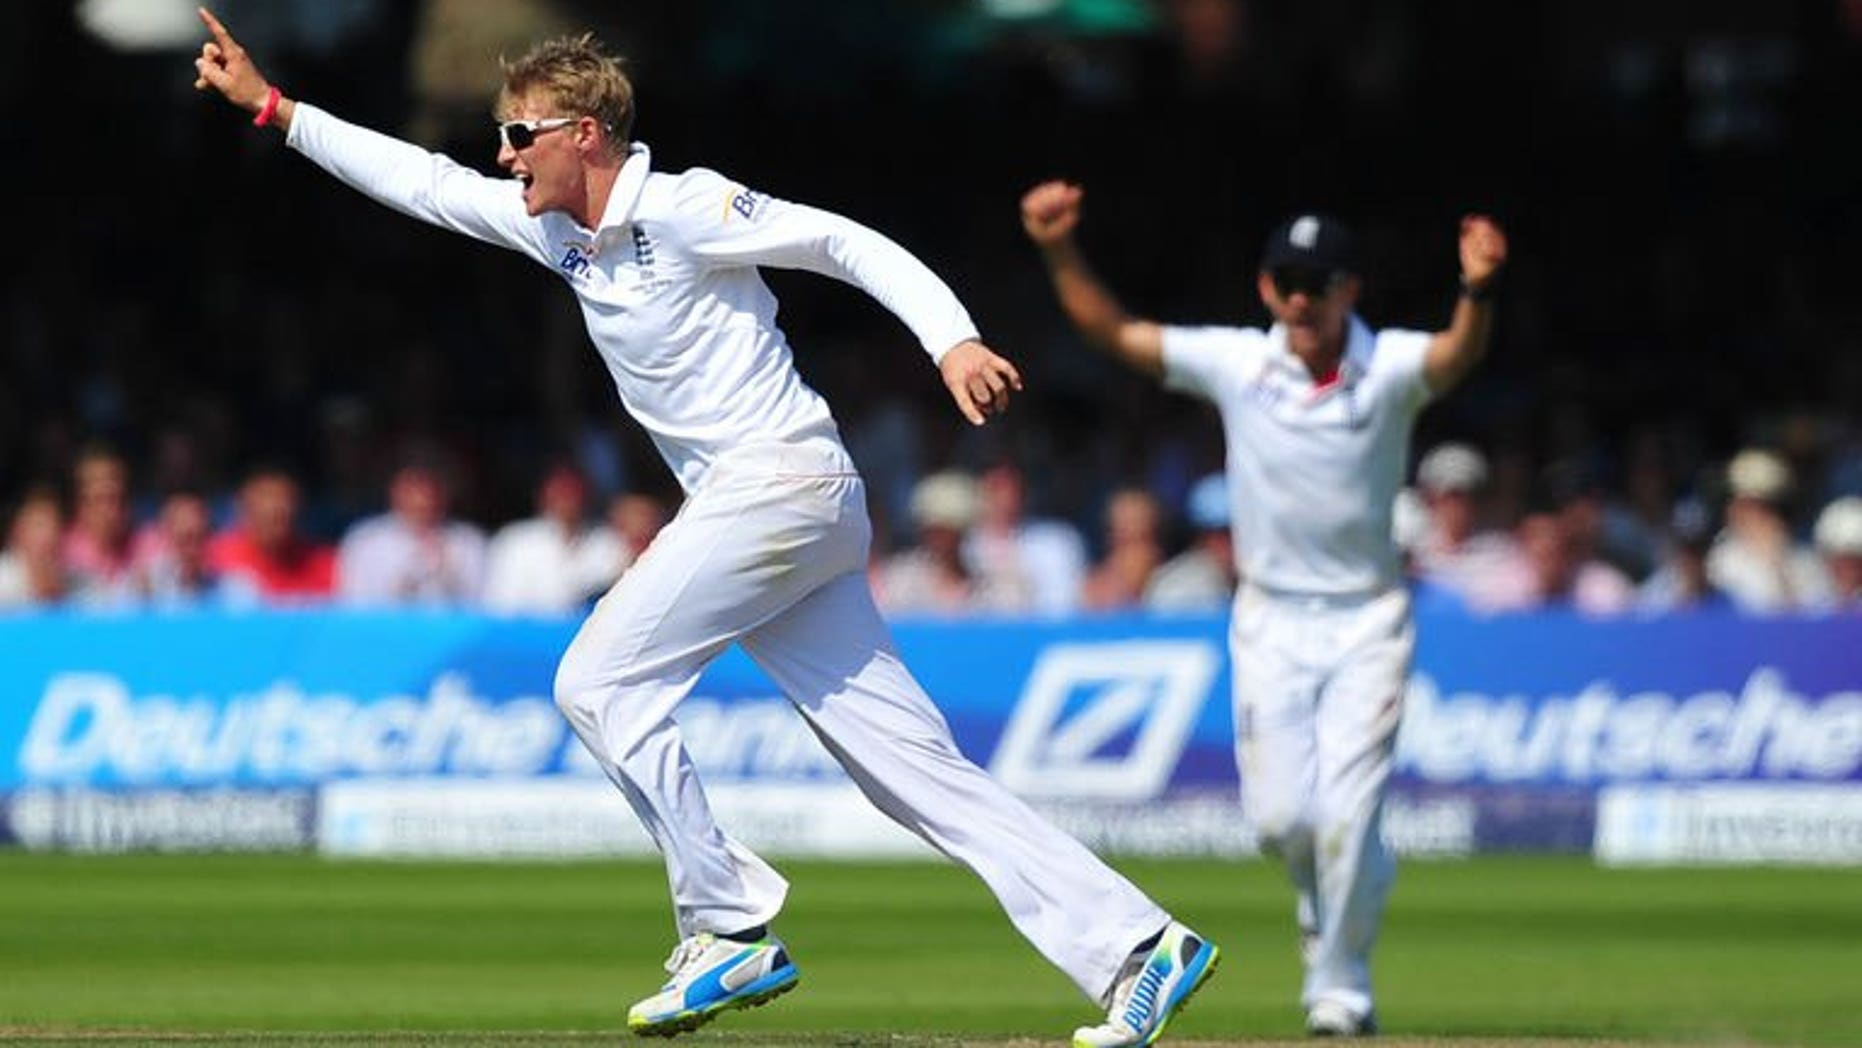 England's Joe Root (left) celebrates after taking the wicket of Australia's Usman Khawaja on the fourth day of the second Ashes Test against Australia at Lord's on July 21, 2013. Root captured two wickets, including the prize scalp of Australia captain Michael Clarke, after making a dominating 180 as England eyed a 2-0 Ashes series lead.